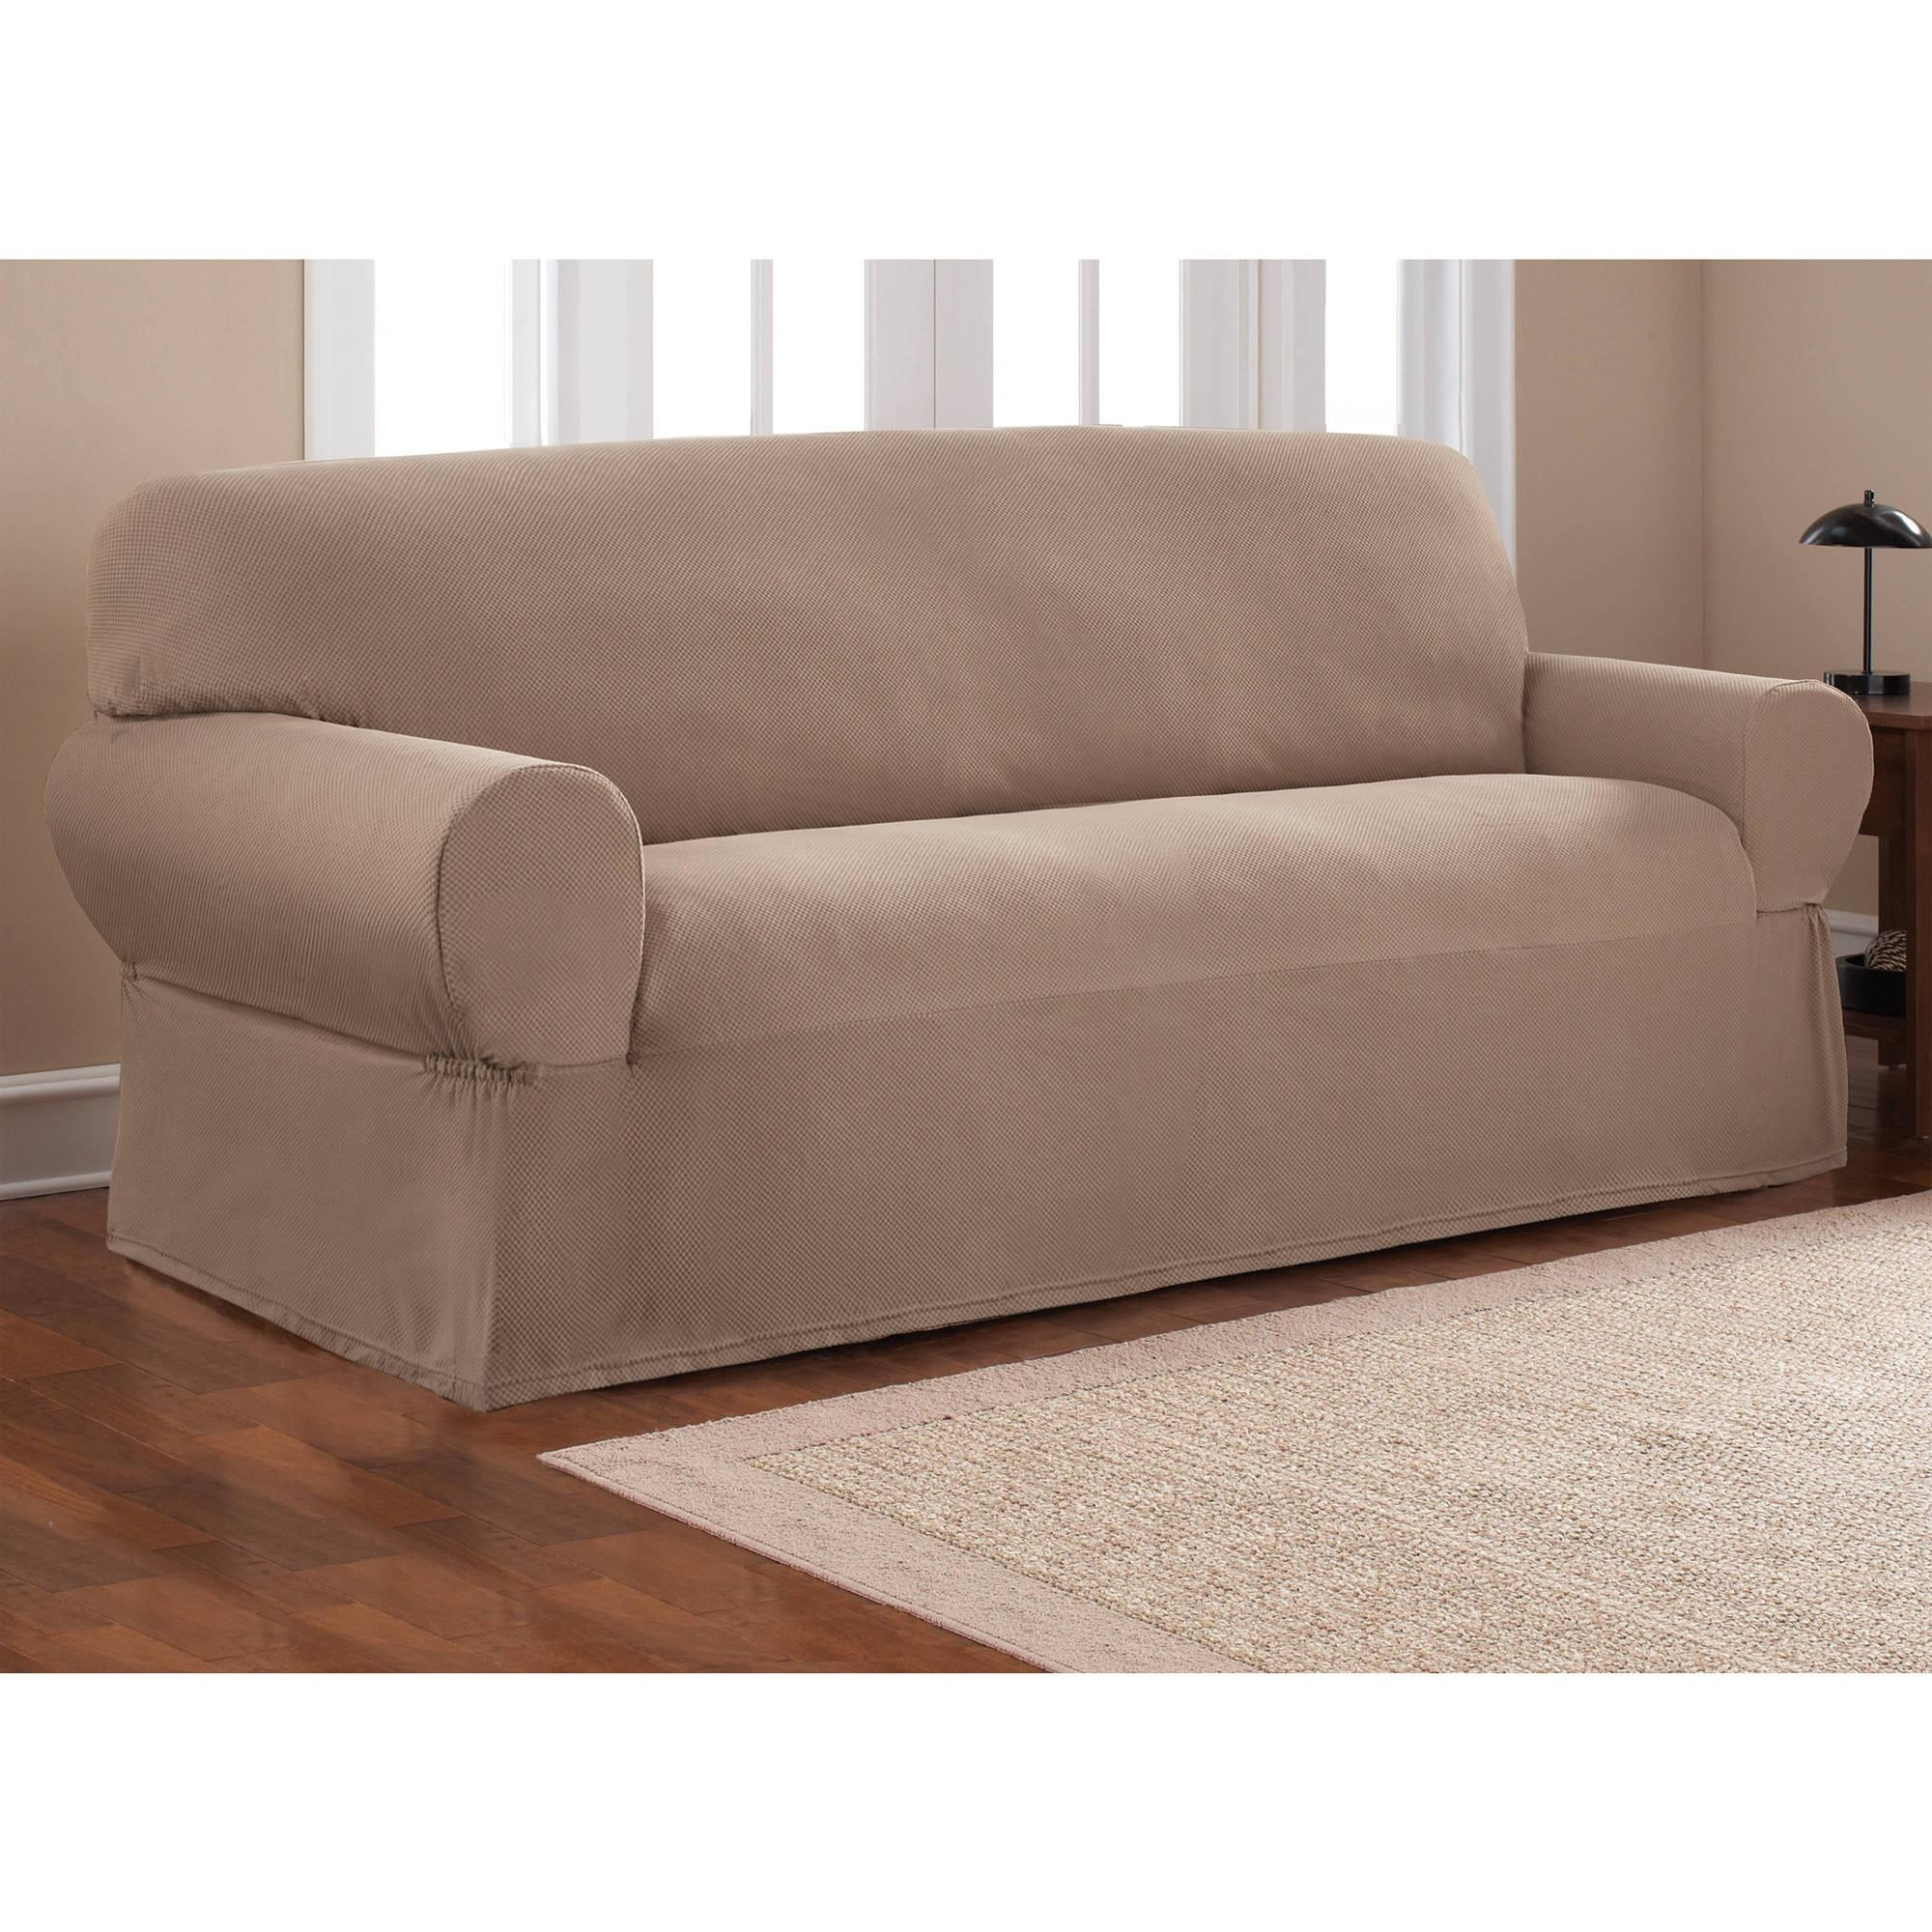 Mainstays 1 Piece Stretch Fabric Sofa Slipcover – Walmart In Slip Covers For Love Seats (View 6 of 20)